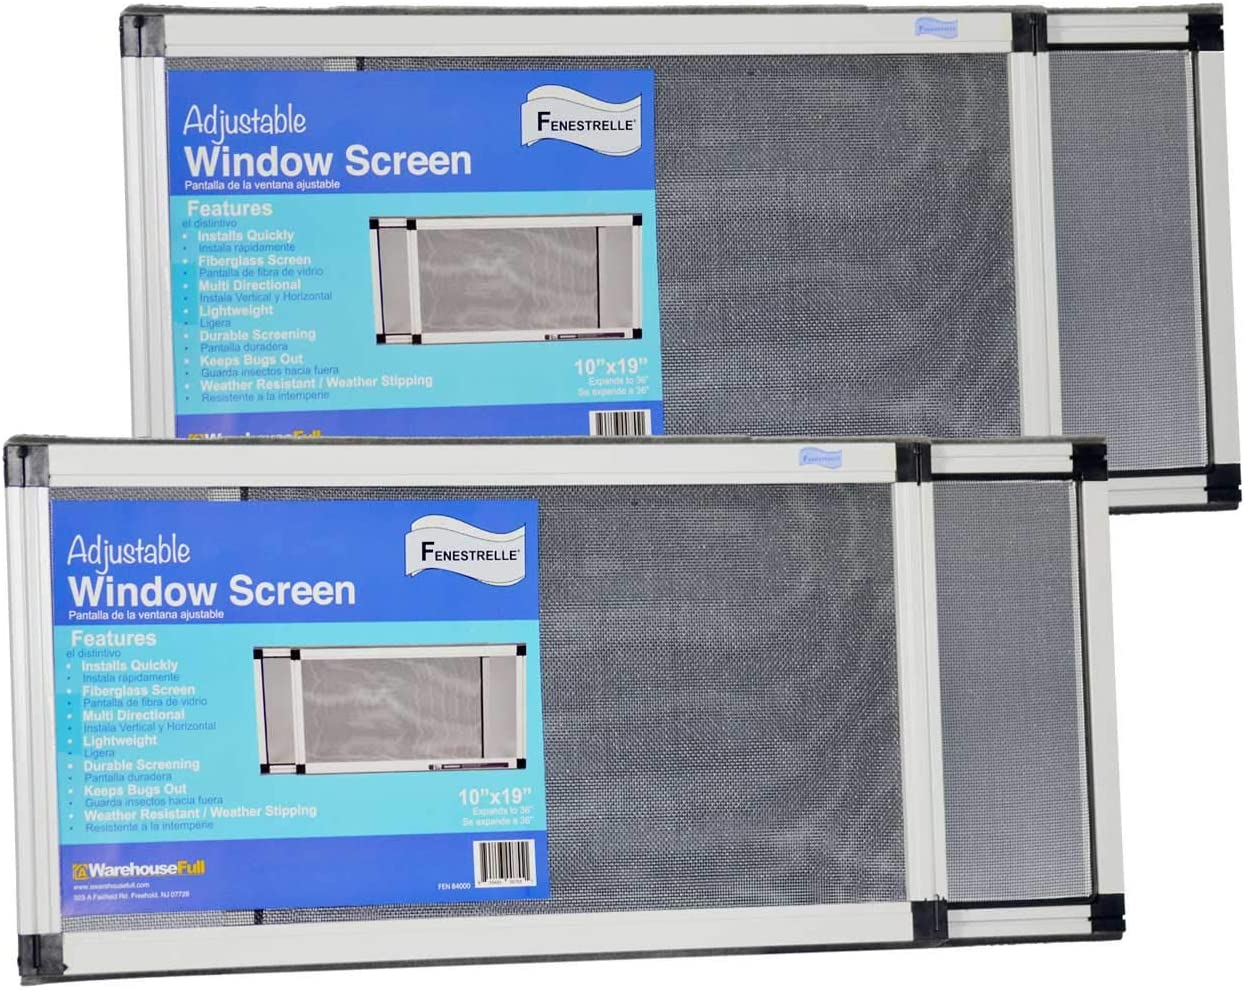 "Fenestrelle Adjustable Window Screen, 2 Way Adjustable, Horizontal (10"" fits 19-36""w) or Convert to Vertical (19"" fits 10-18""w) - 2 Pack"